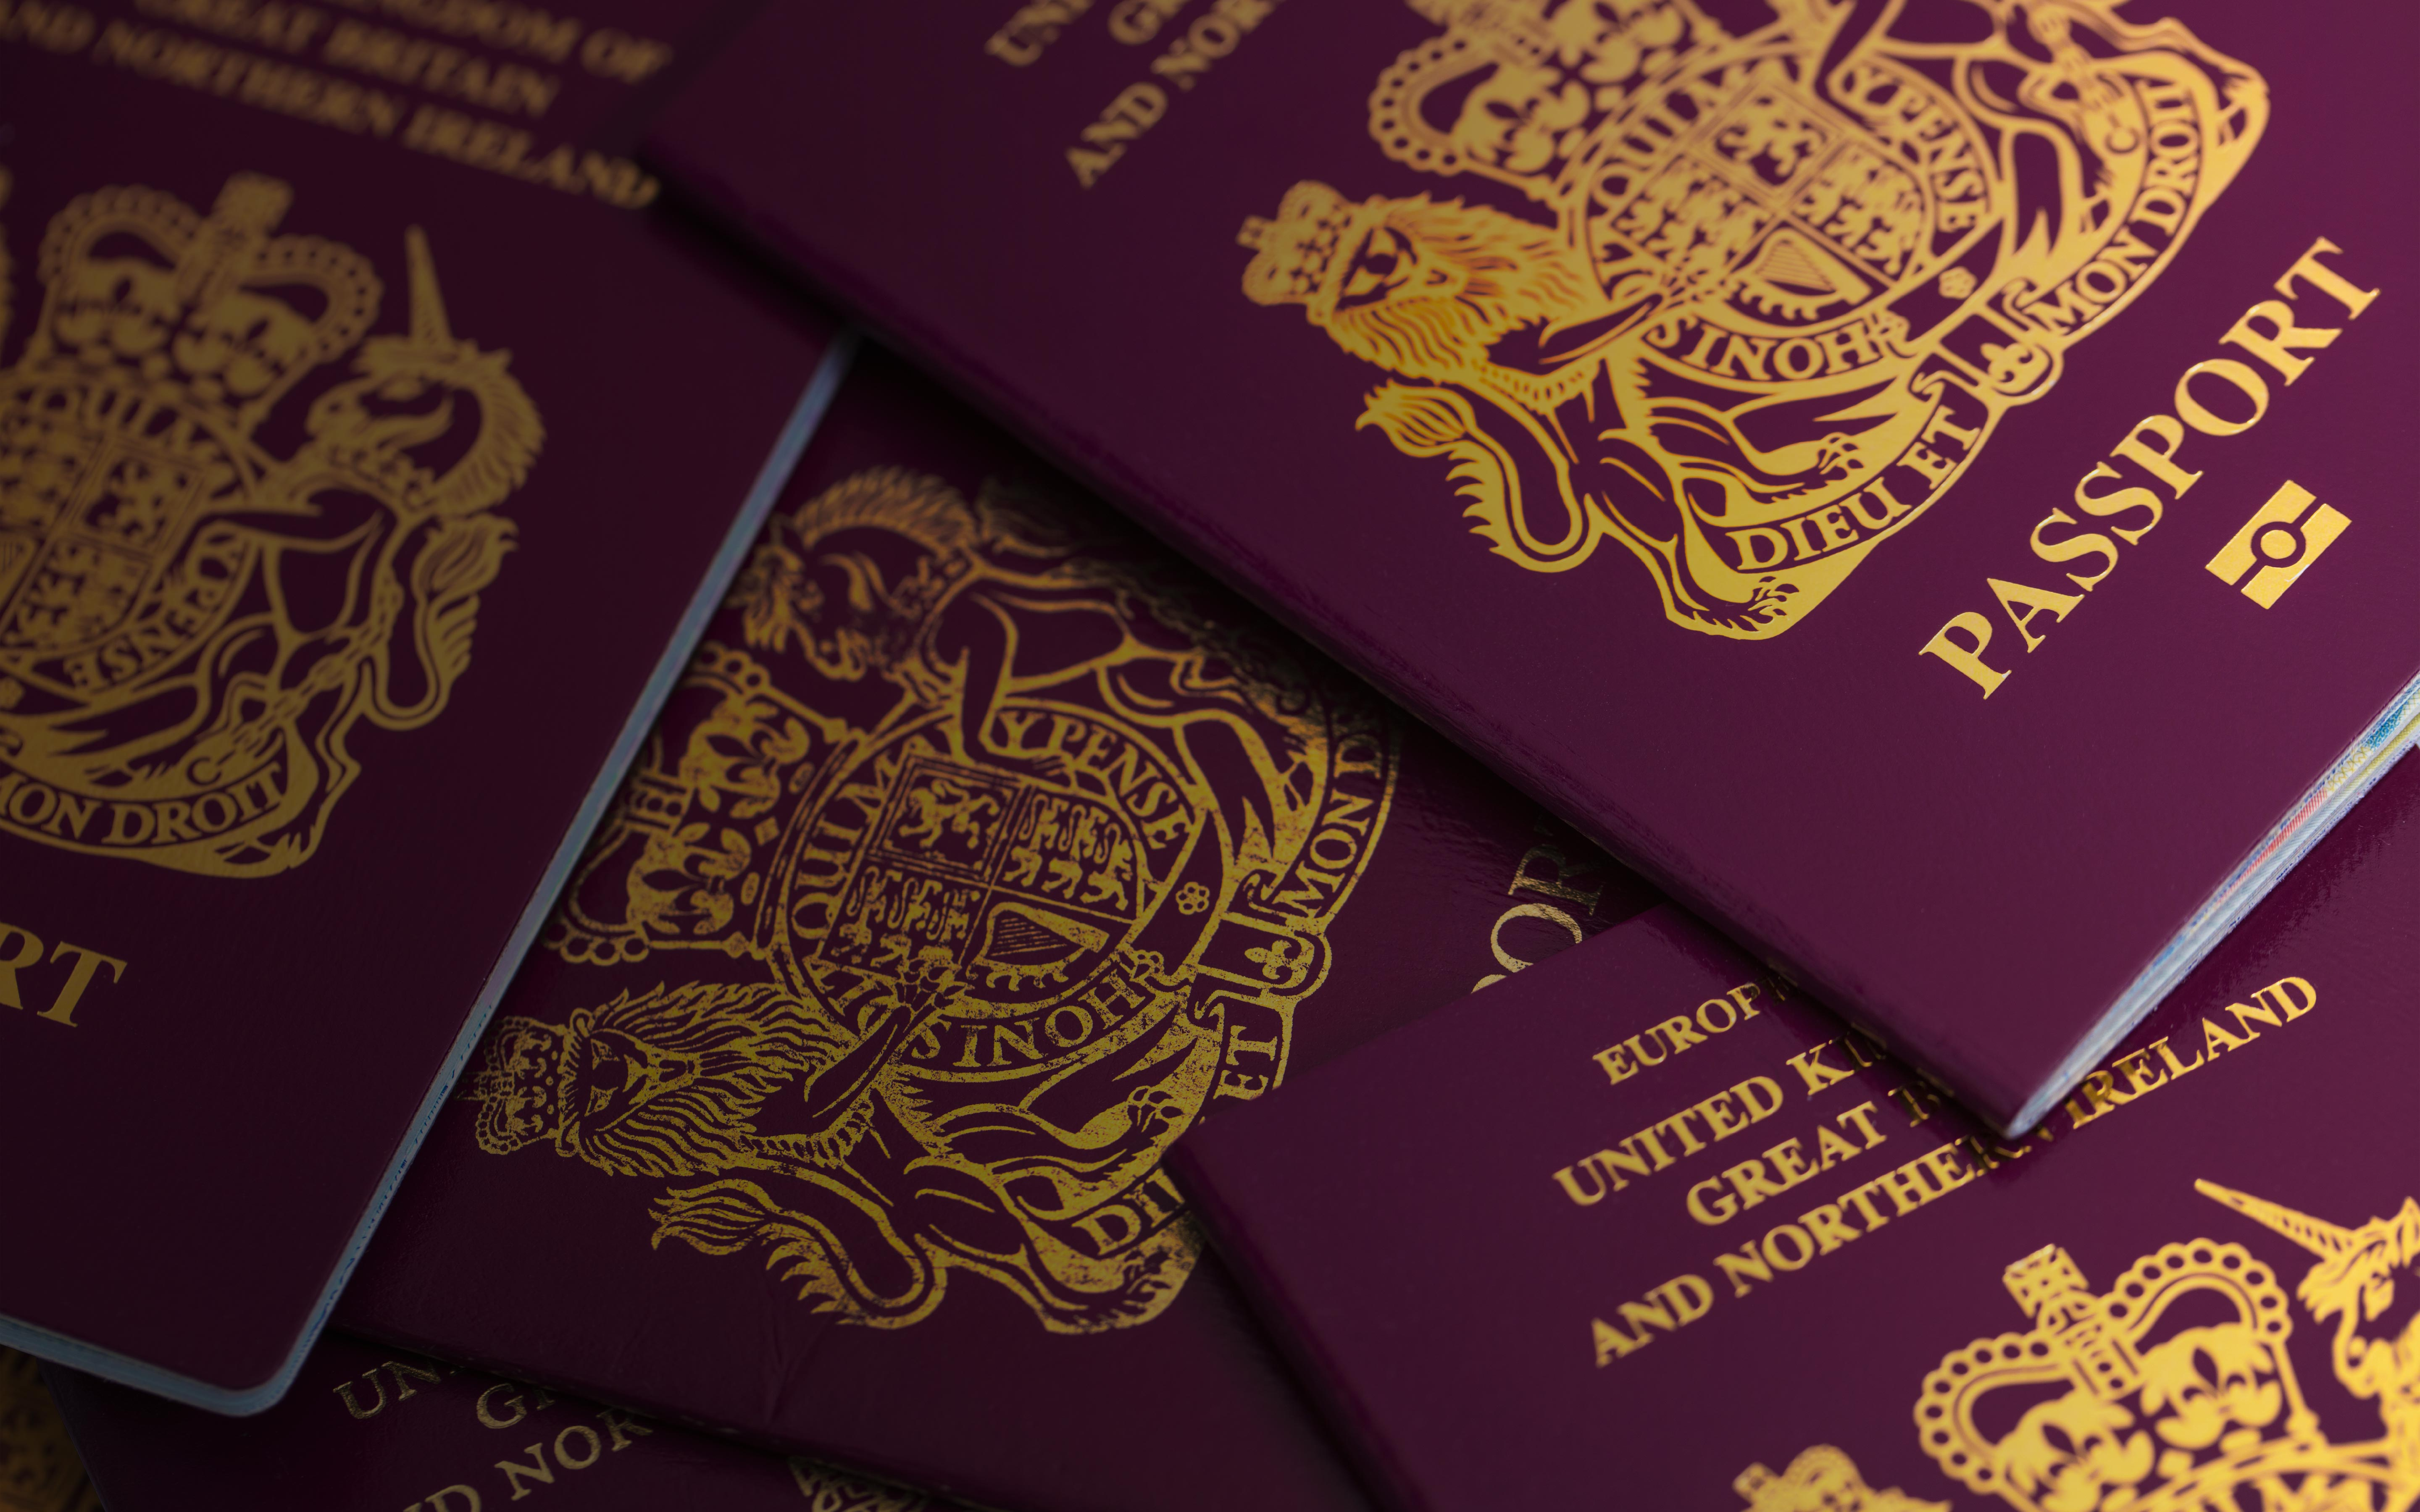 UK RESIDENCY & CITIZENSHIP BY INVESTMENT